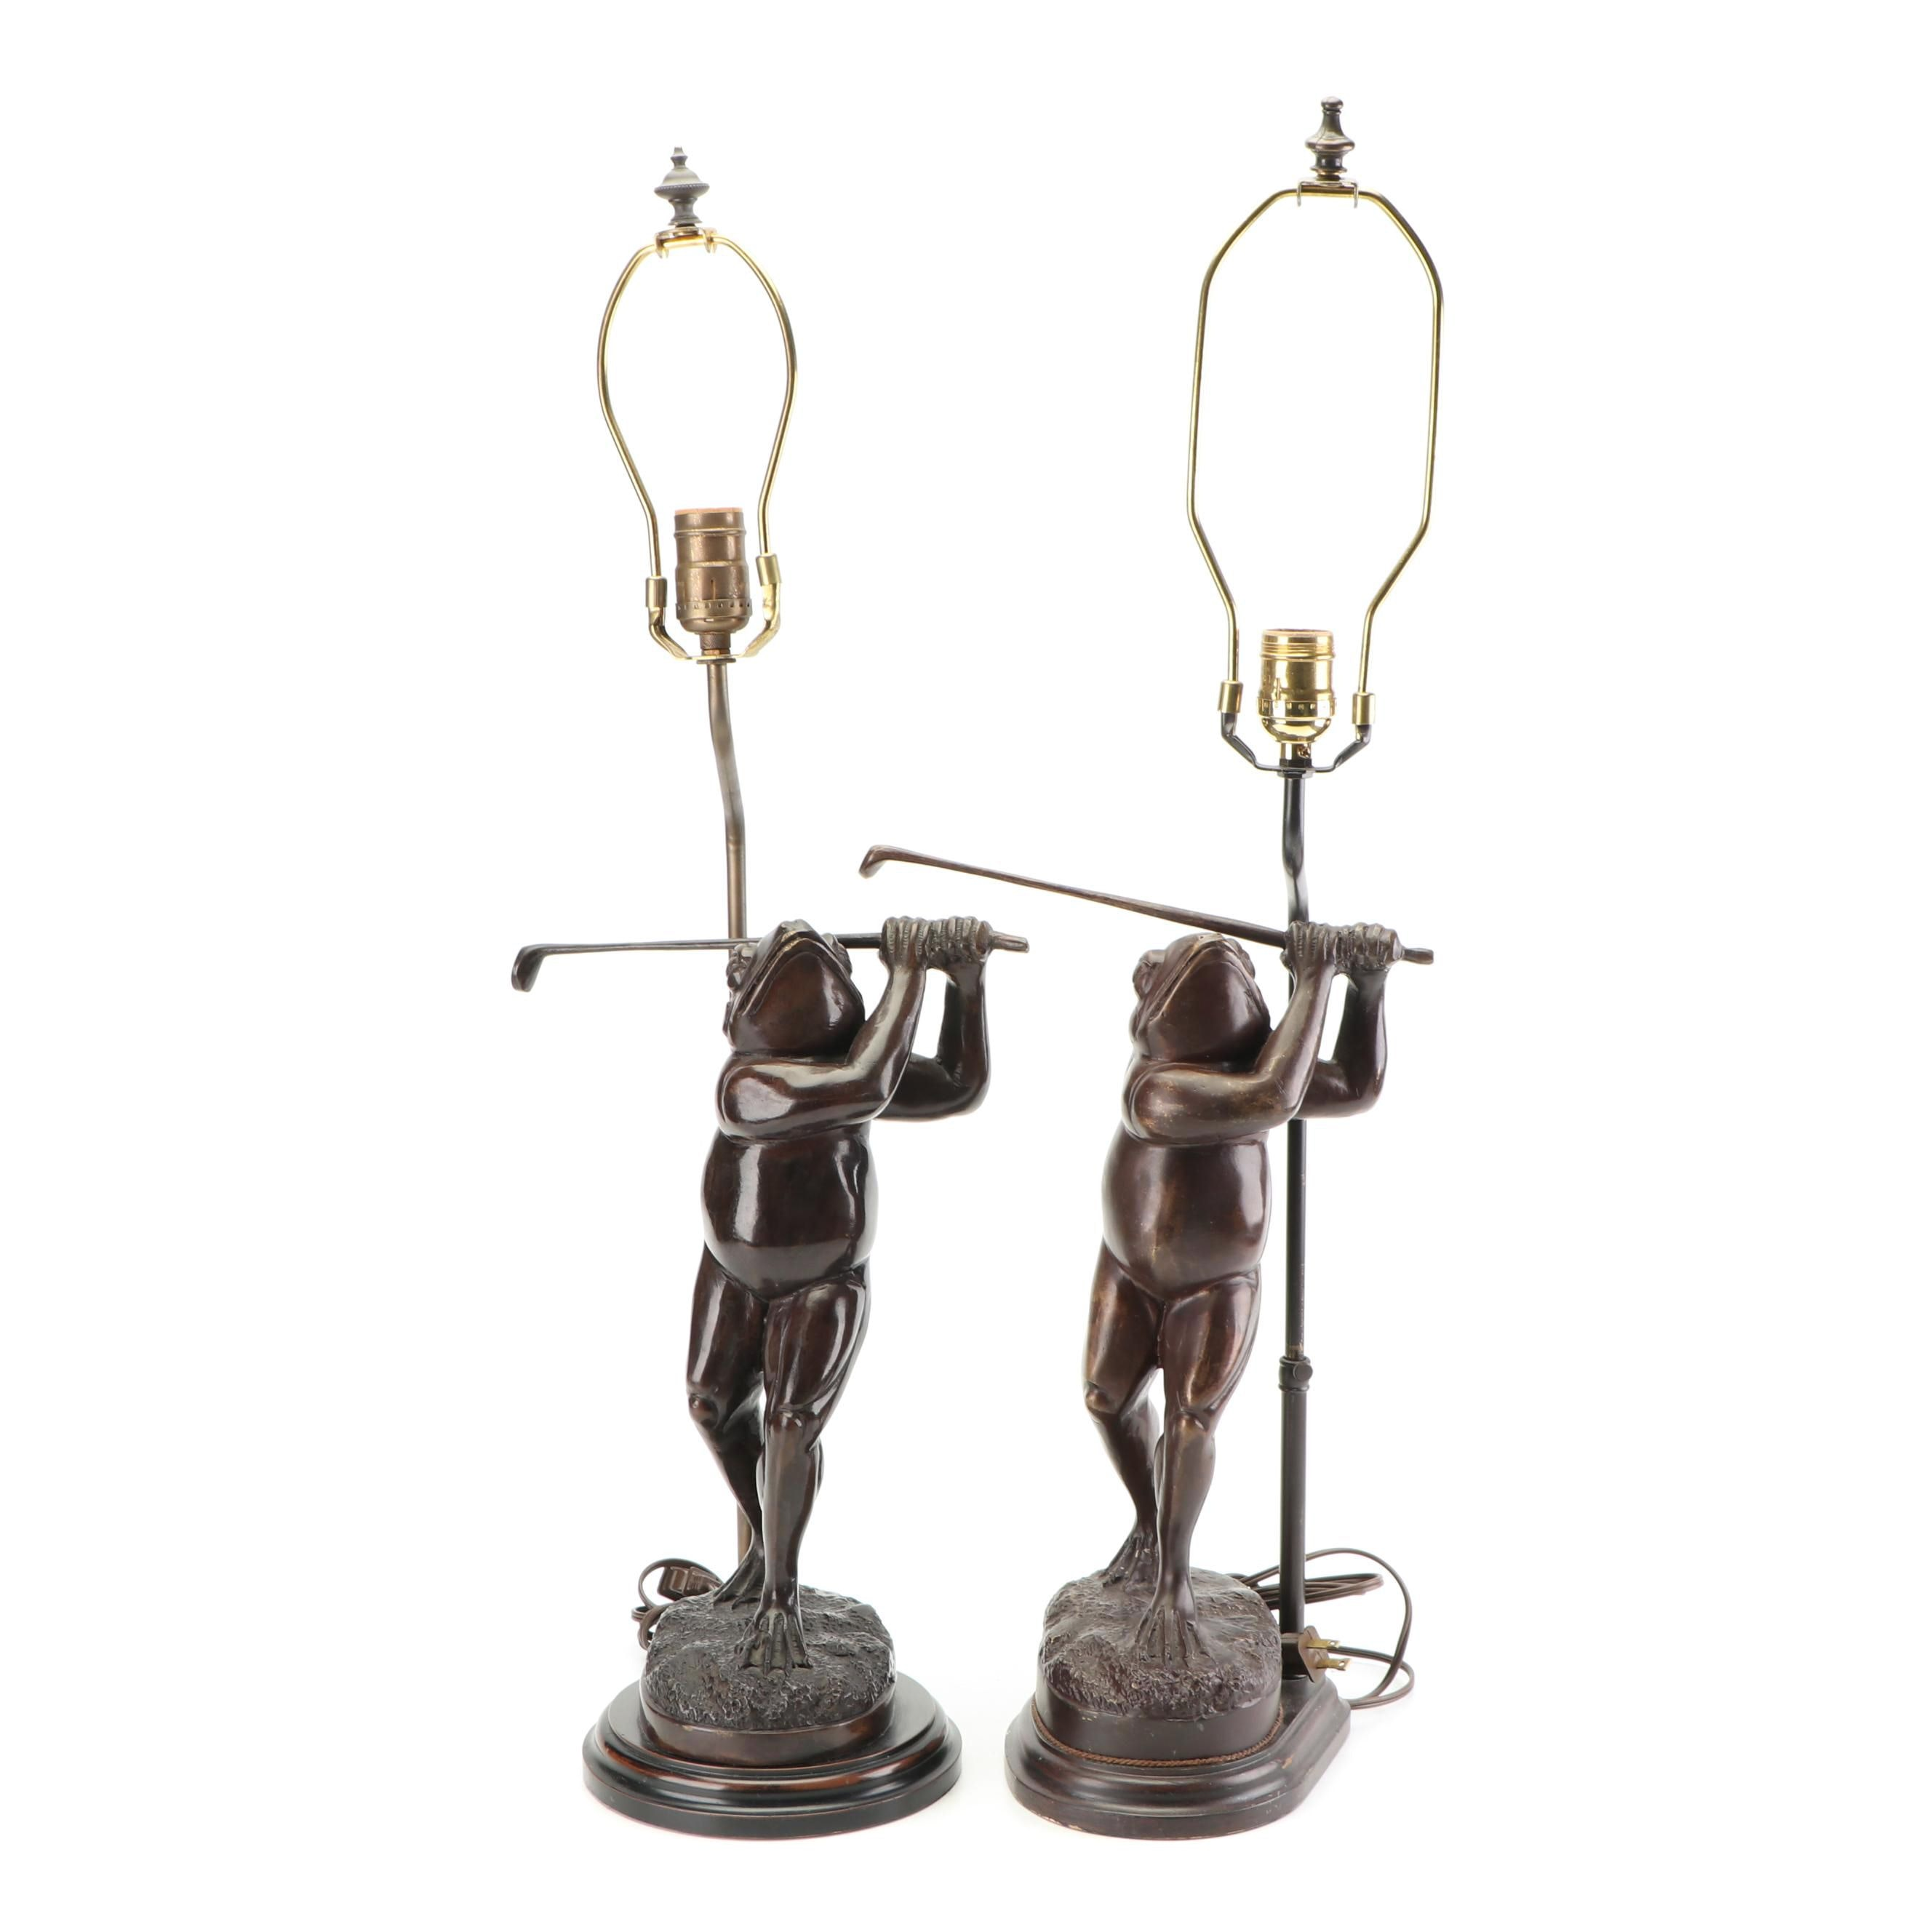 Pair of Cast Metal Frog Golfer Table Lamps